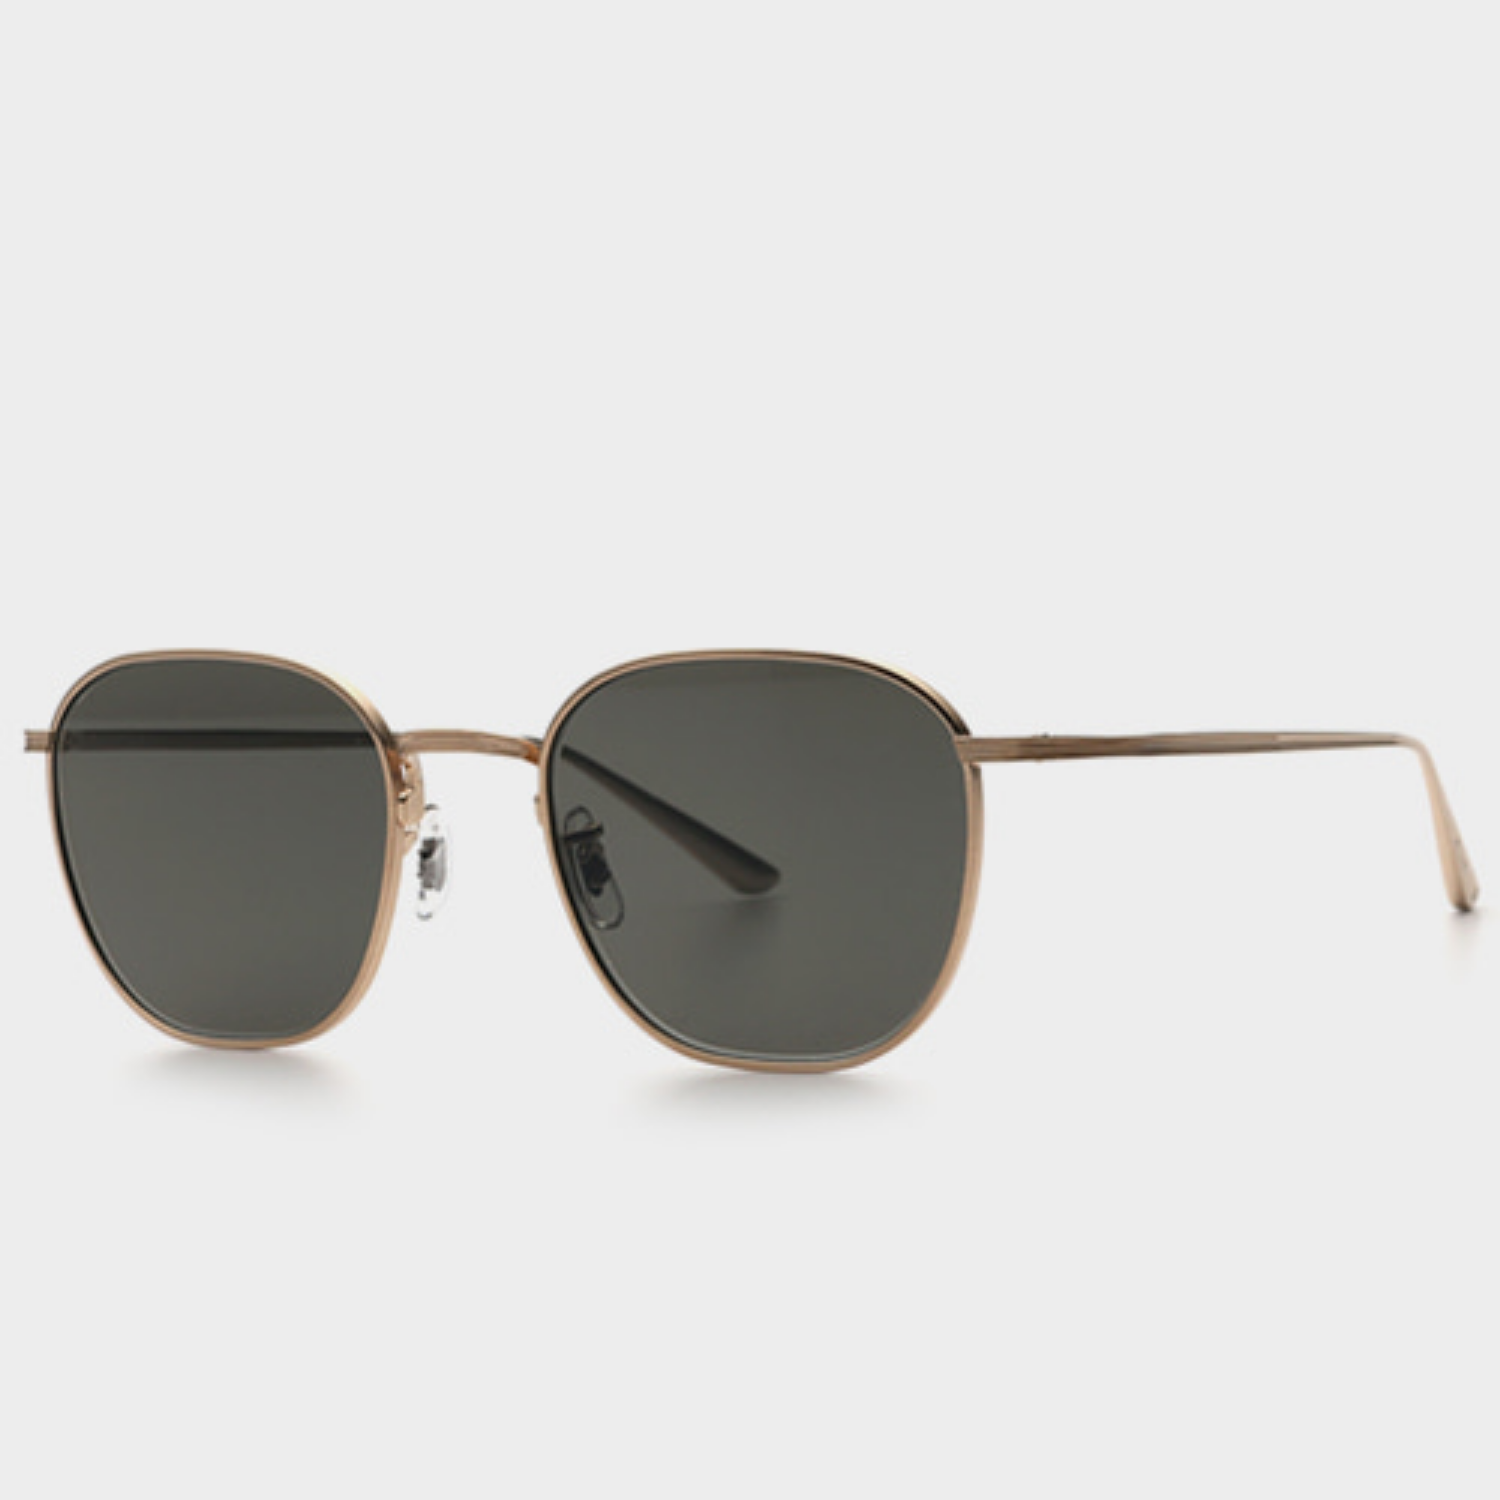 [올리버피플스선글라스] 보드미팅2 OV1230ST 5252R5 (49) BOARD MEETING 2 (OLIVER PEOPLES x THE ROW)